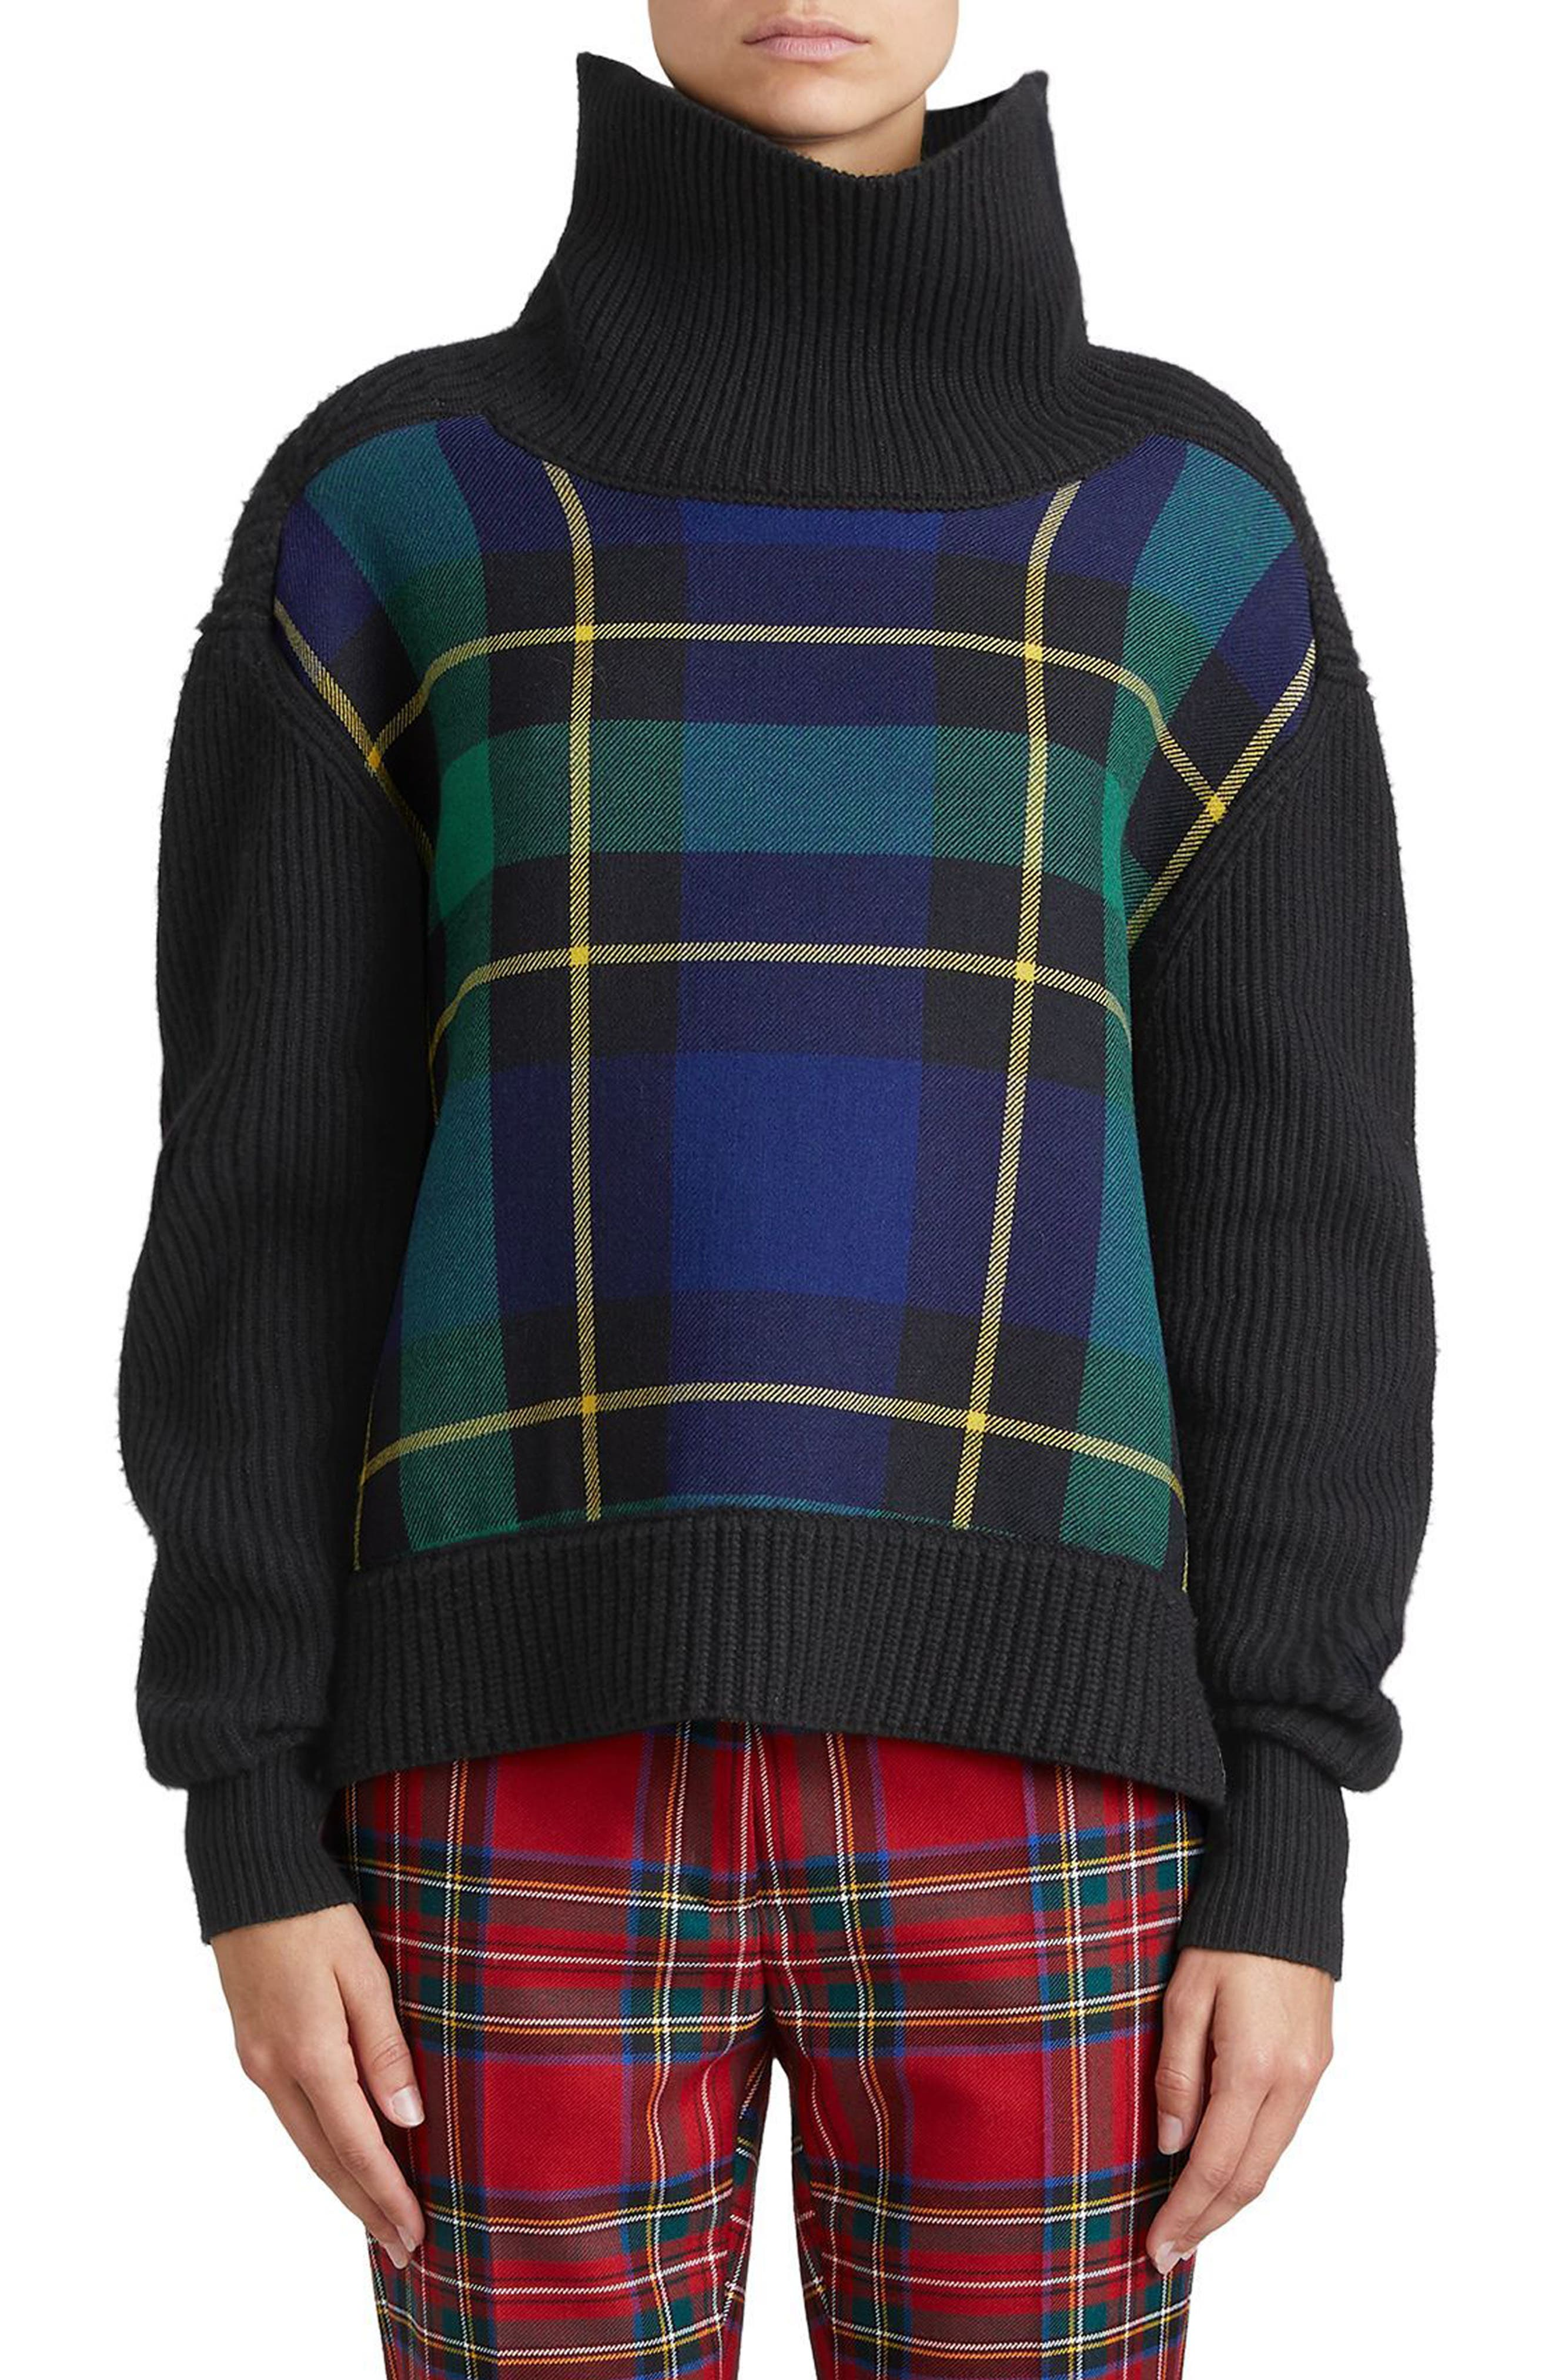 Burberry Fiora Check Wool & Cashmere Turtleneck Sweater